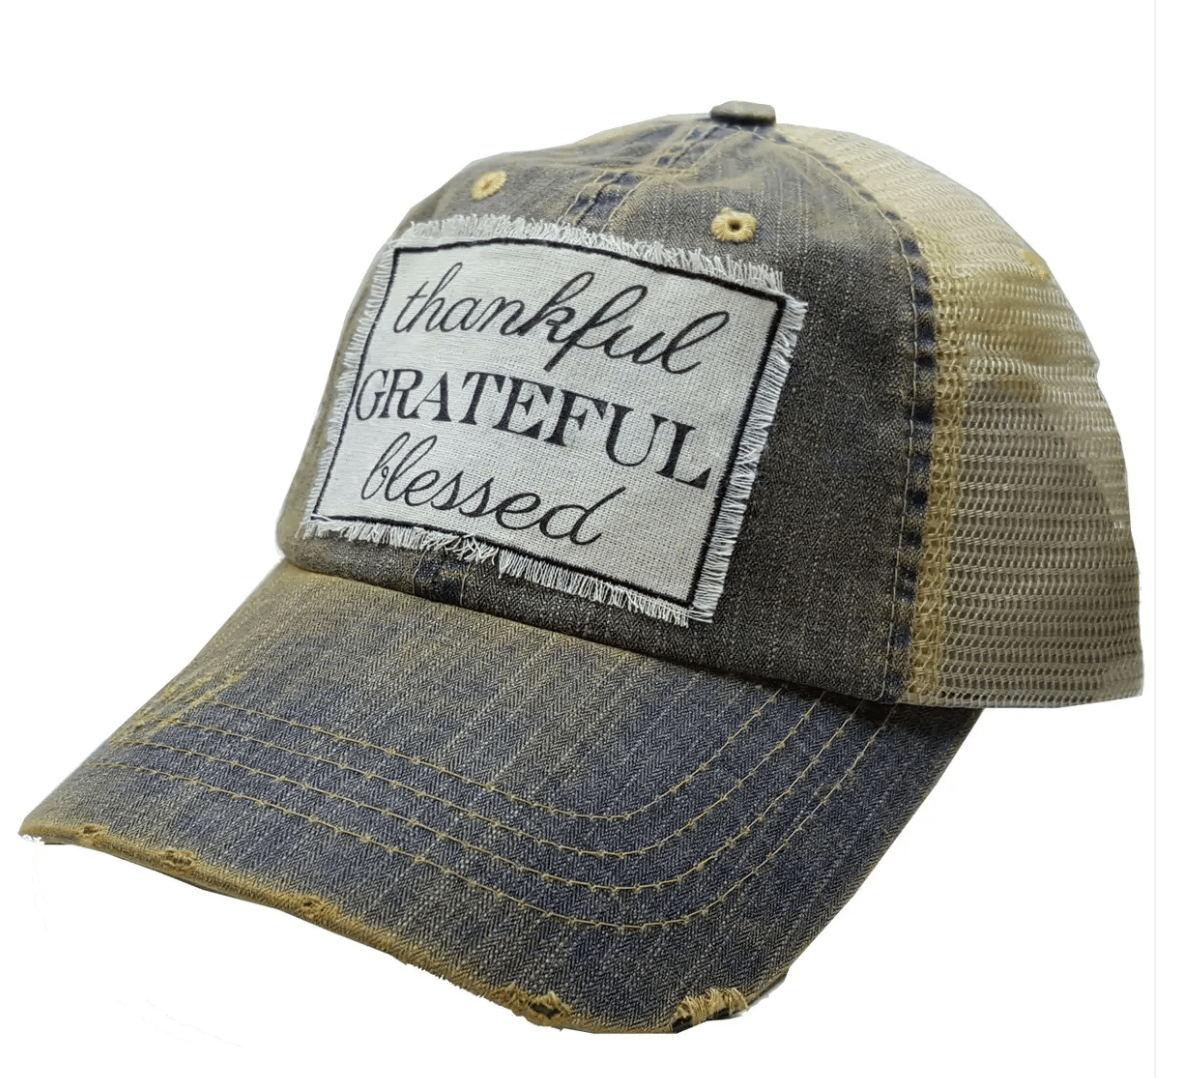 Blue Denim Thankful Grateful Blessed Baseball Hat